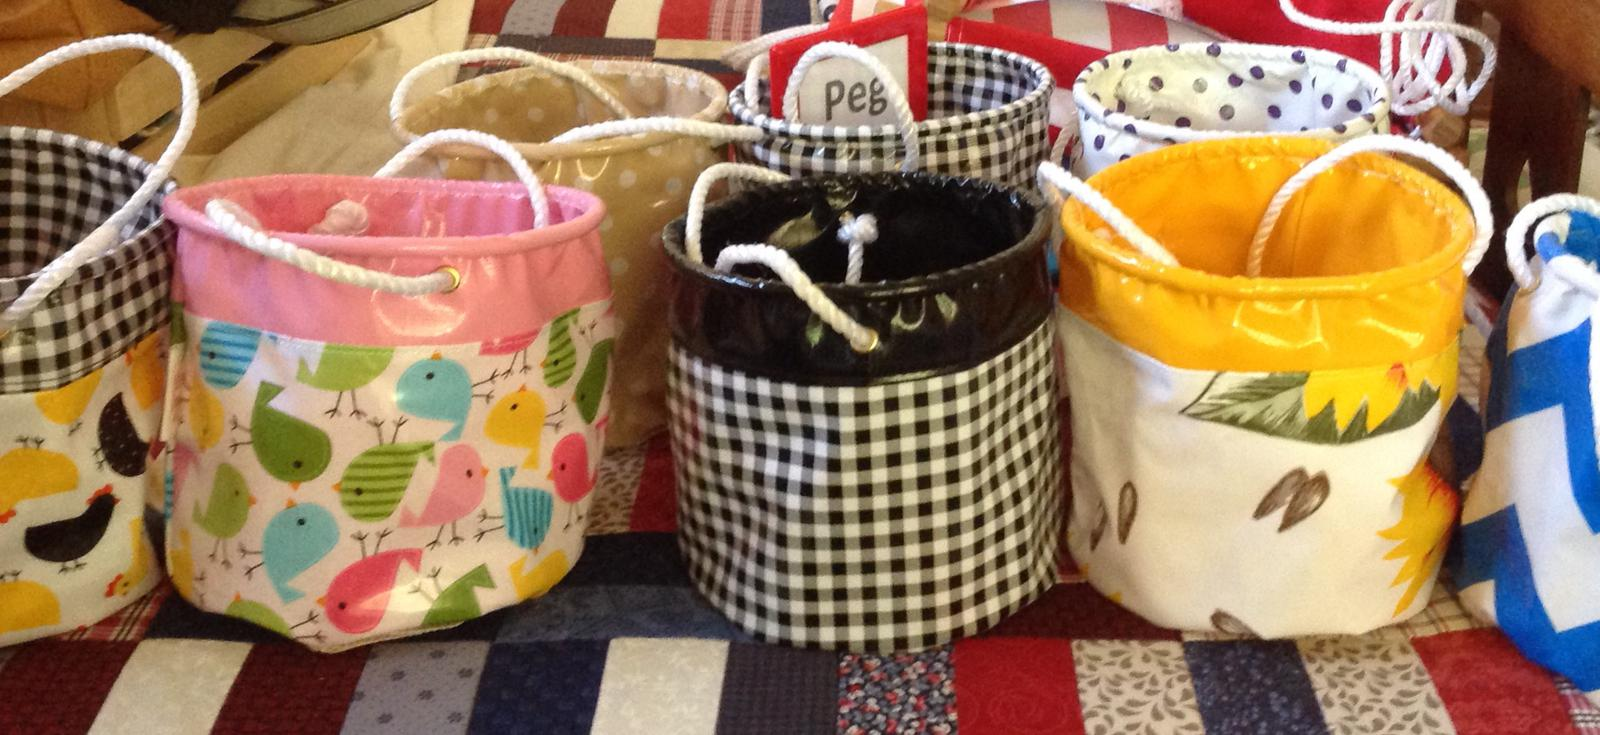 Peg Bags, complete with a shade clothe base to allow the rain to run through!